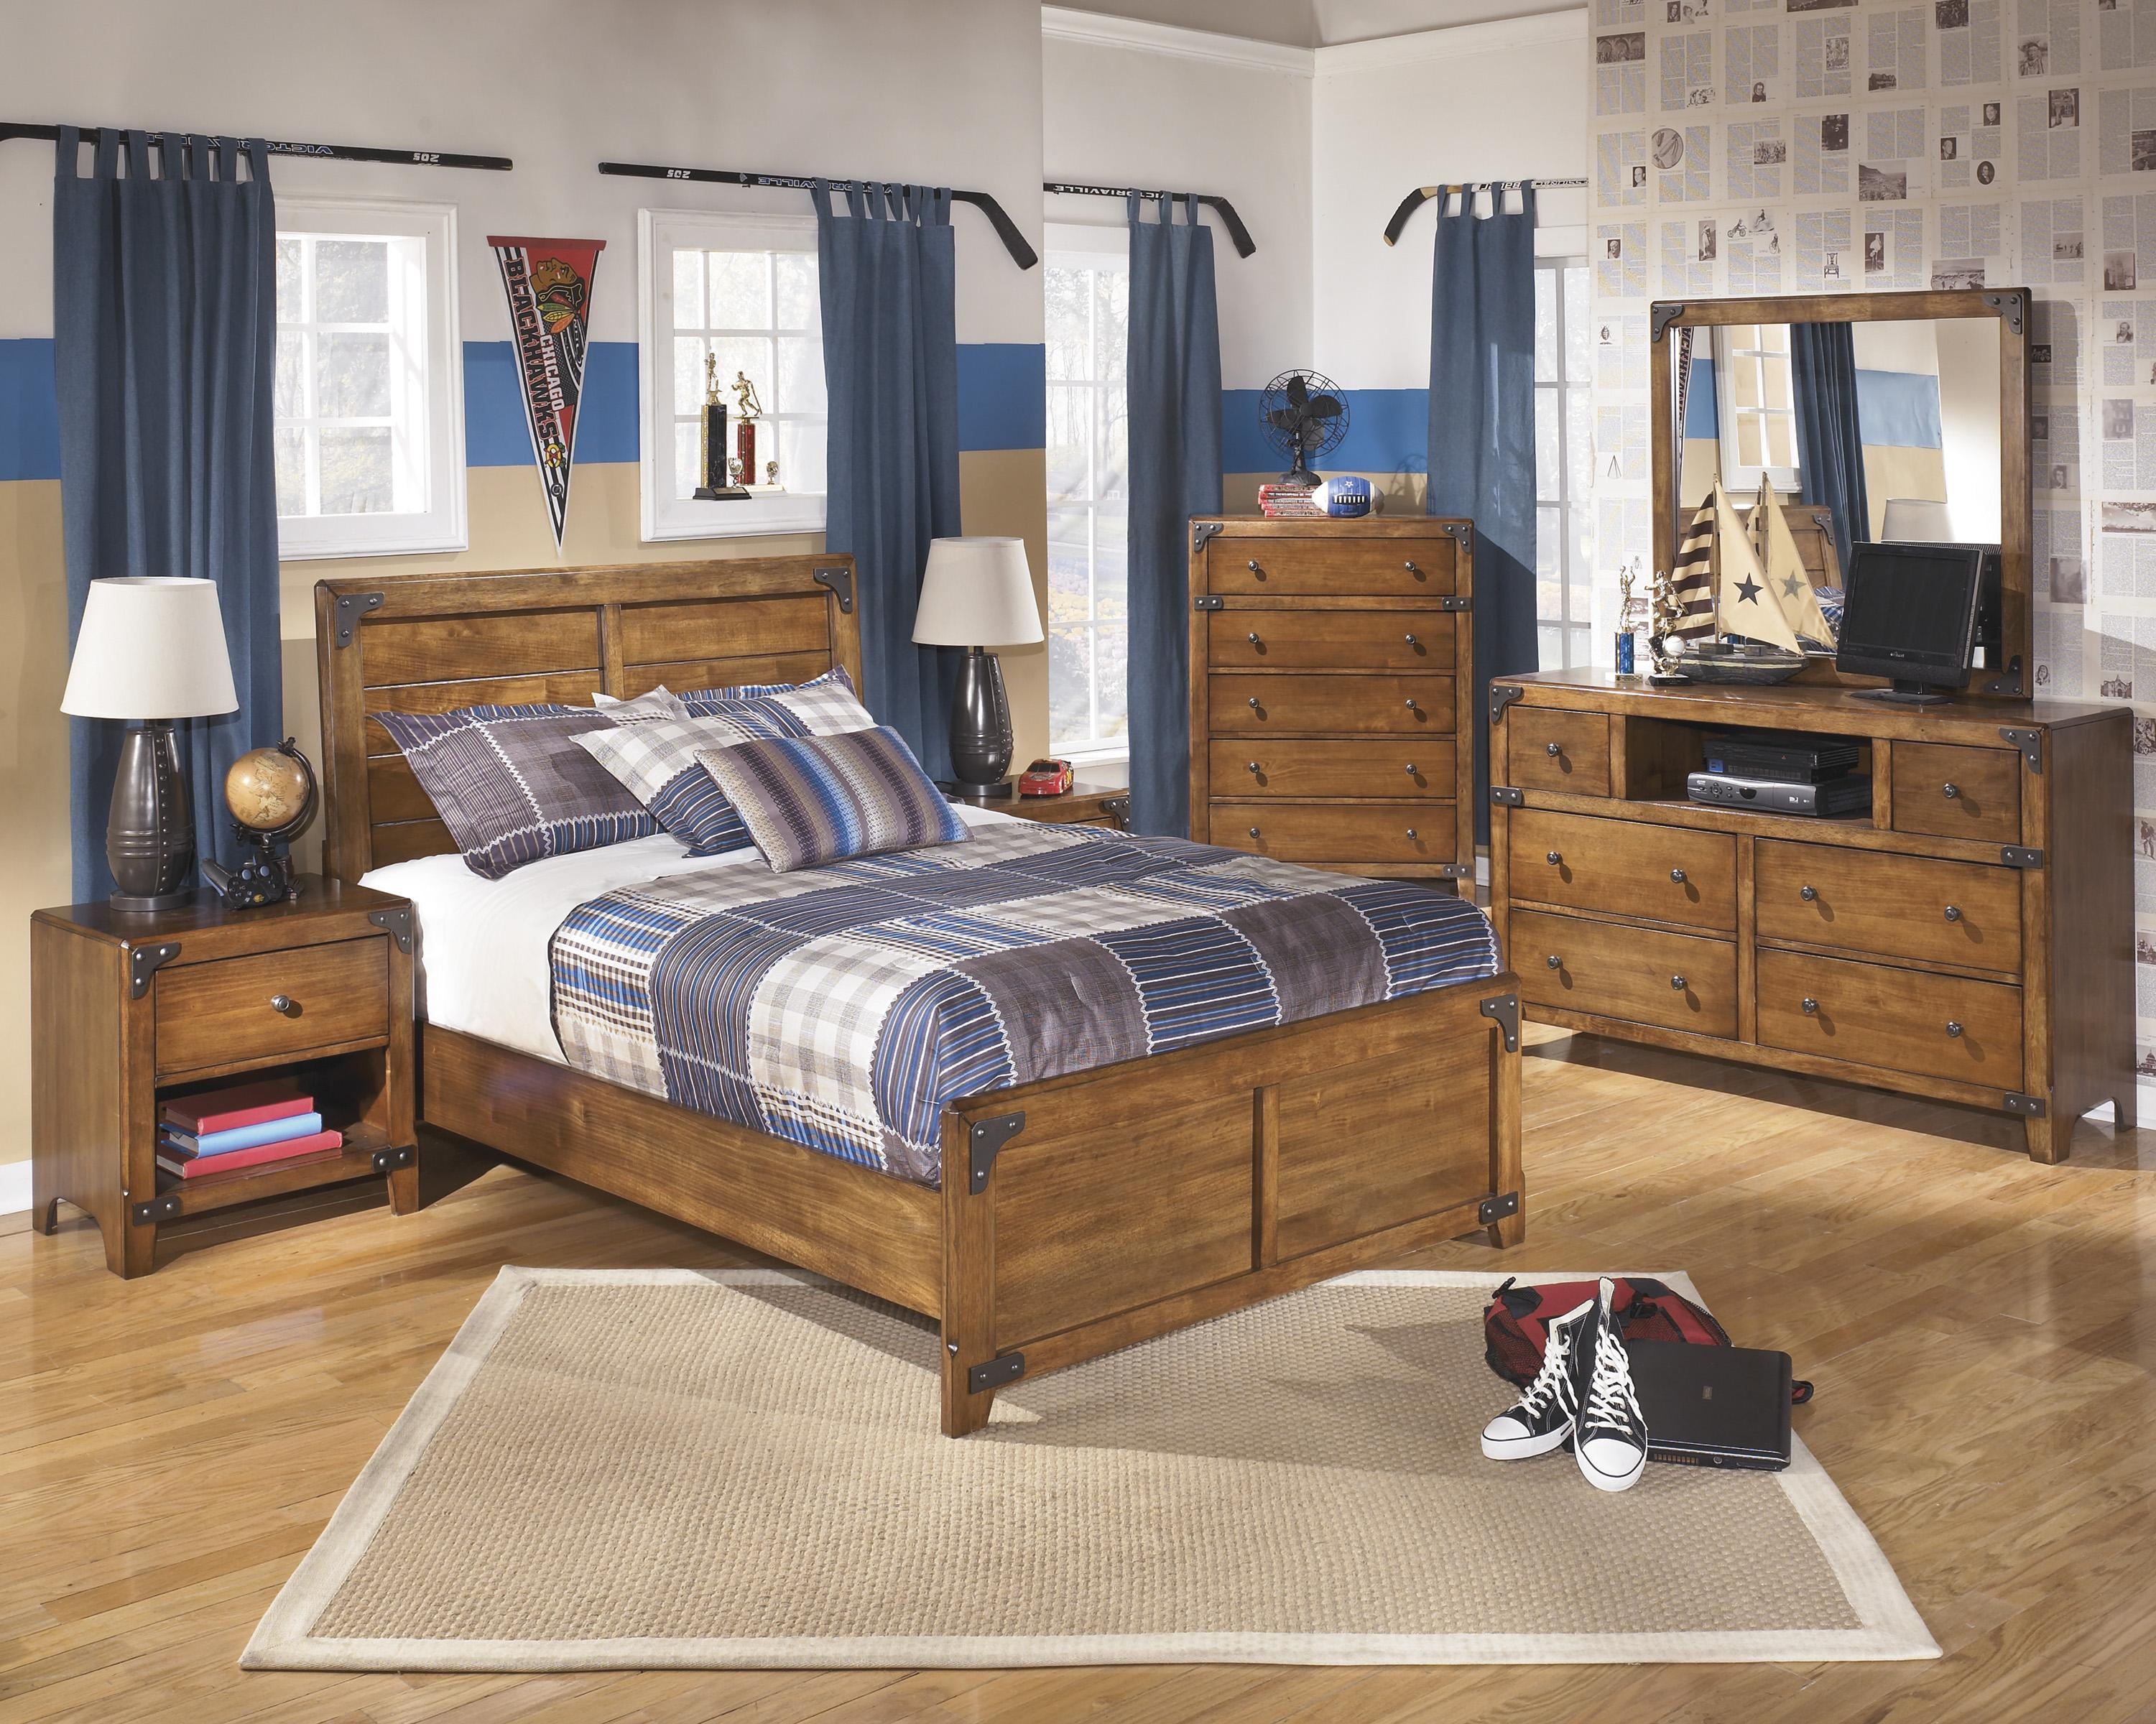 Ashley rustic bedroom furniture - Ashley Signature Design Delburne Twin Panel Bed In Rustic Pine Dunk Bright Furniture Headboard Footboard